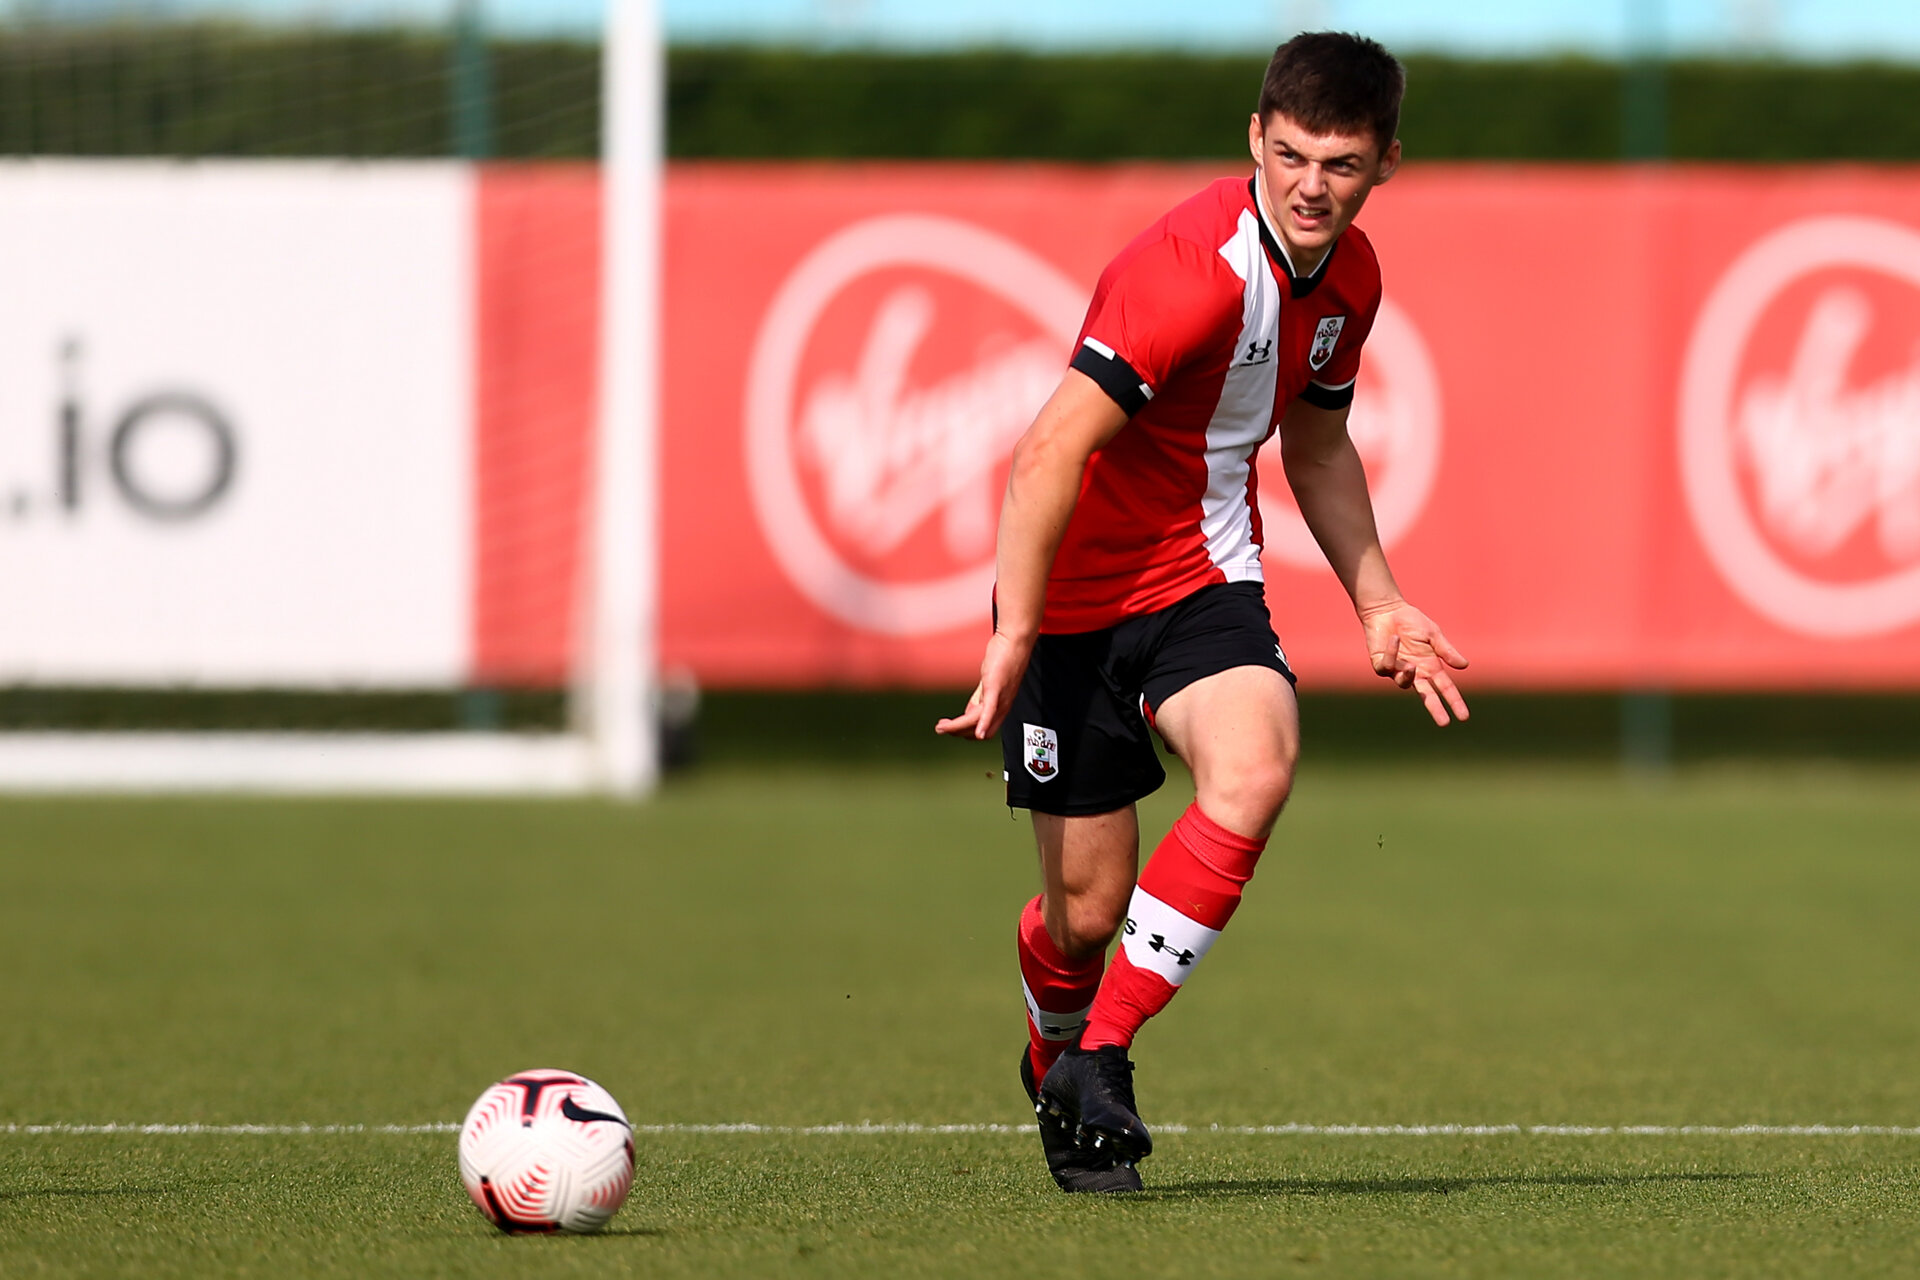 SOUTHAMPTON, ENGLAND - SEPTEMBER 19: Matt Carson during the Premier League U18 match between Southampton FC U18 and Crystal Palace FC at Staplewood Training Ground on September 19, 2020 in Southampton, England. (Photo by Isabelle Field/Southampton FC via Getty Images)